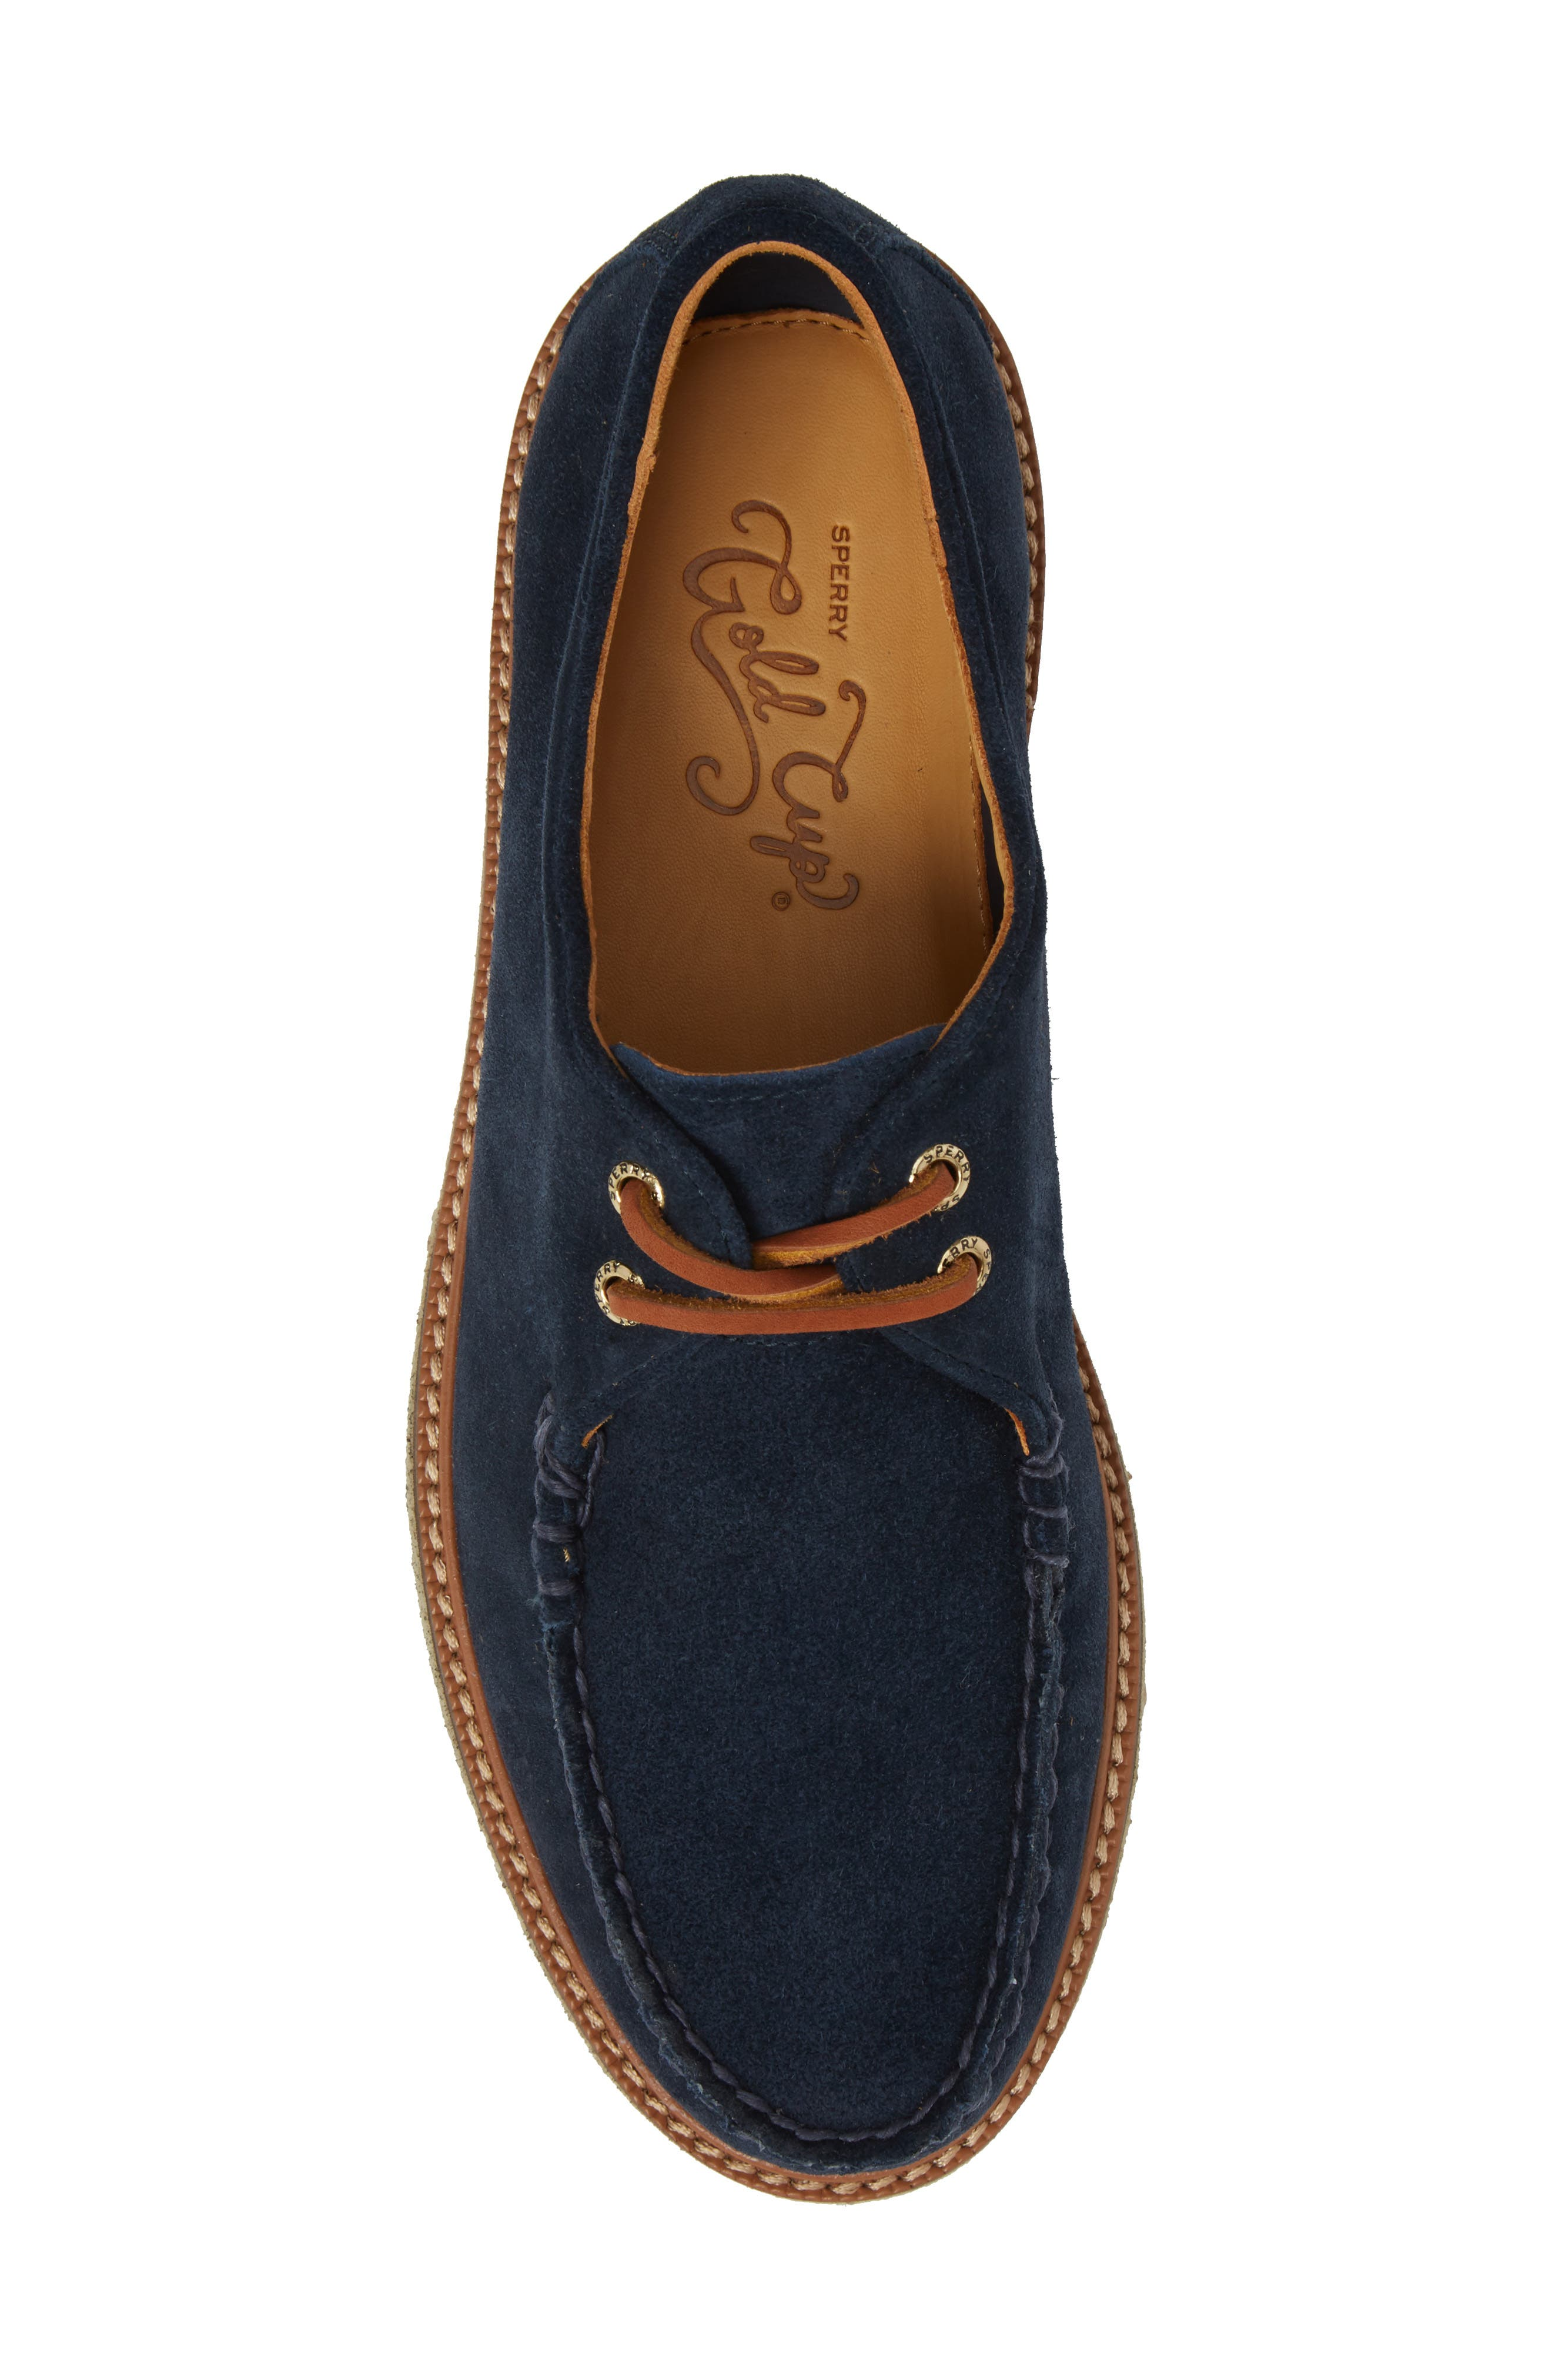 SPERRY, Gold Cup Captain's Crepe Sole Oxford, Alternate thumbnail 5, color, BLUE LEATHER/ SUEDE